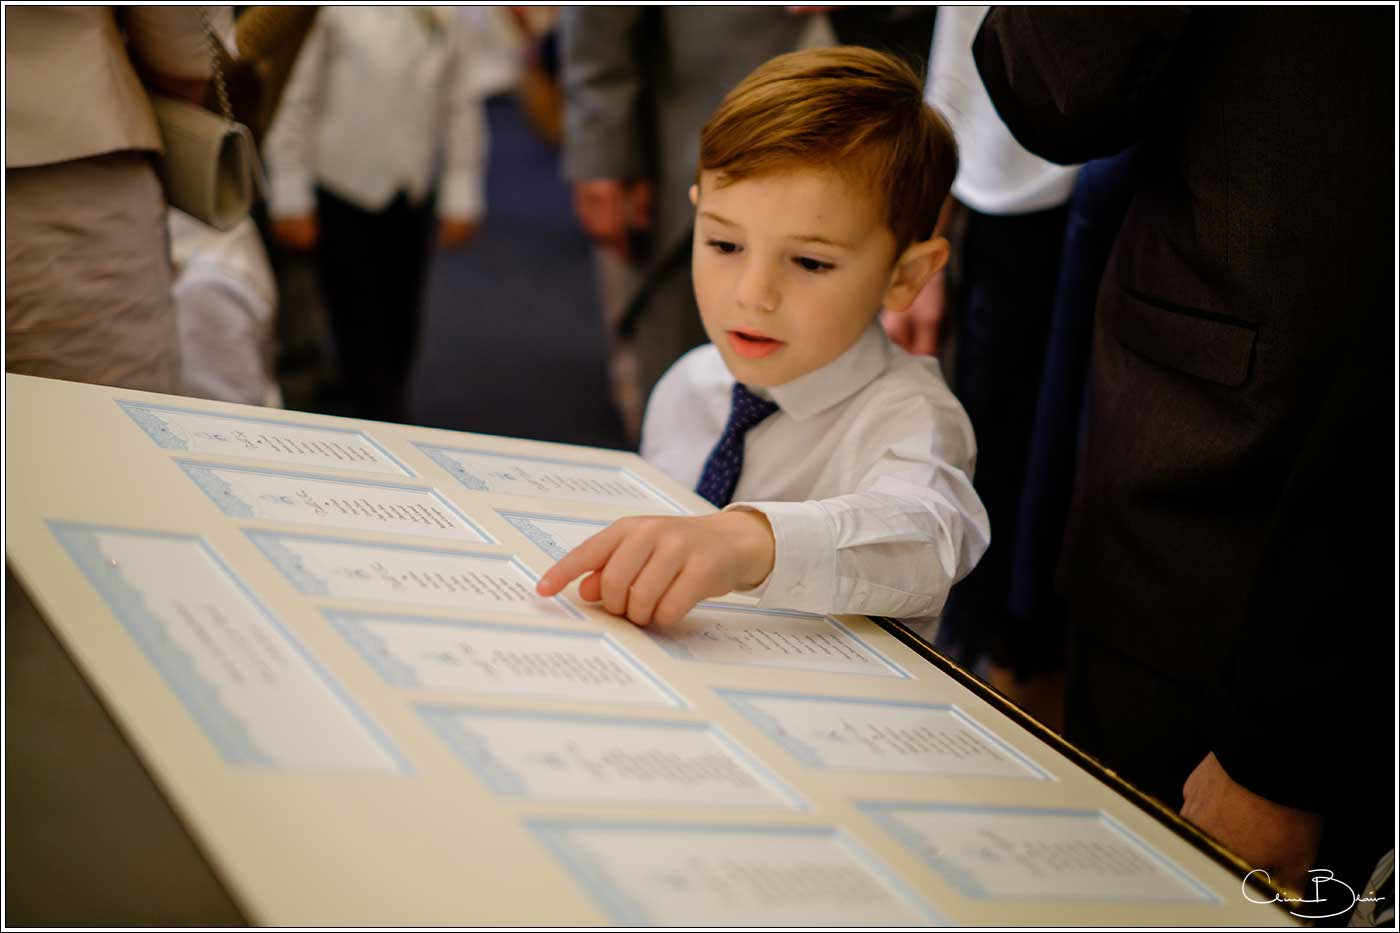 Coombe Abbey wedding photography showing child spotting his name on the guests seating plan